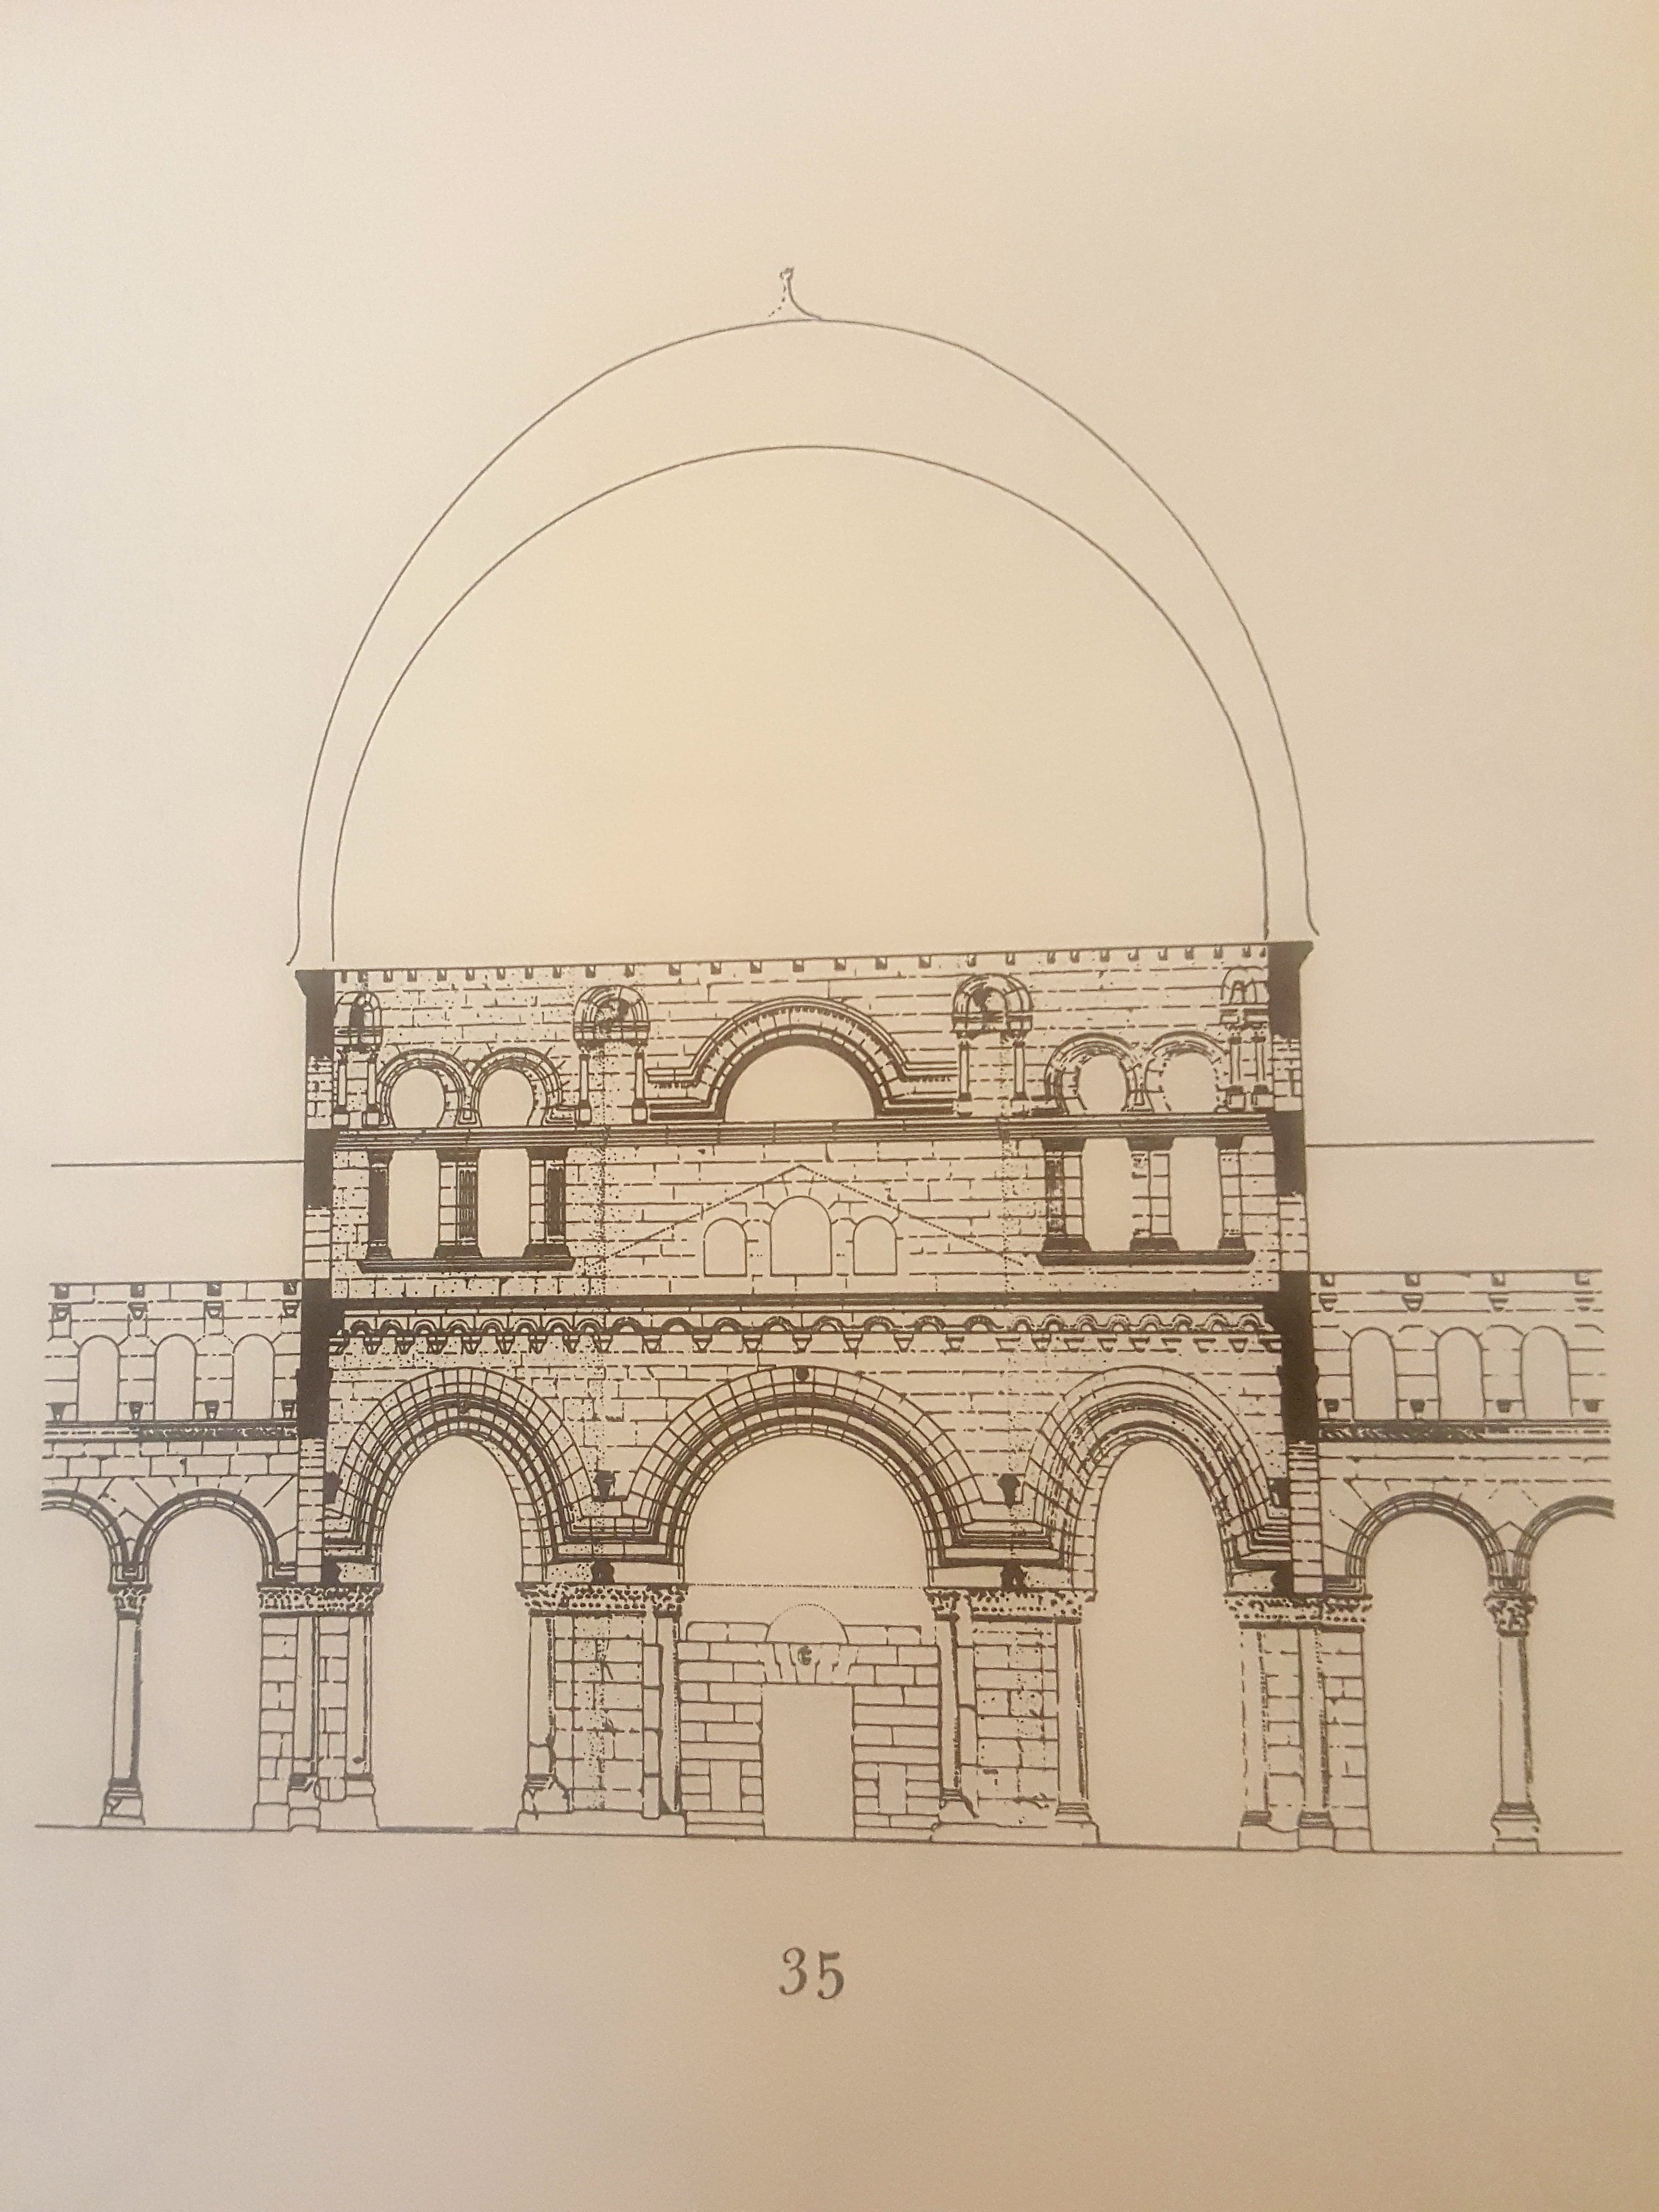 What is the foundation of your life and health? This architectural drawing shows many arches resting on a foundation.